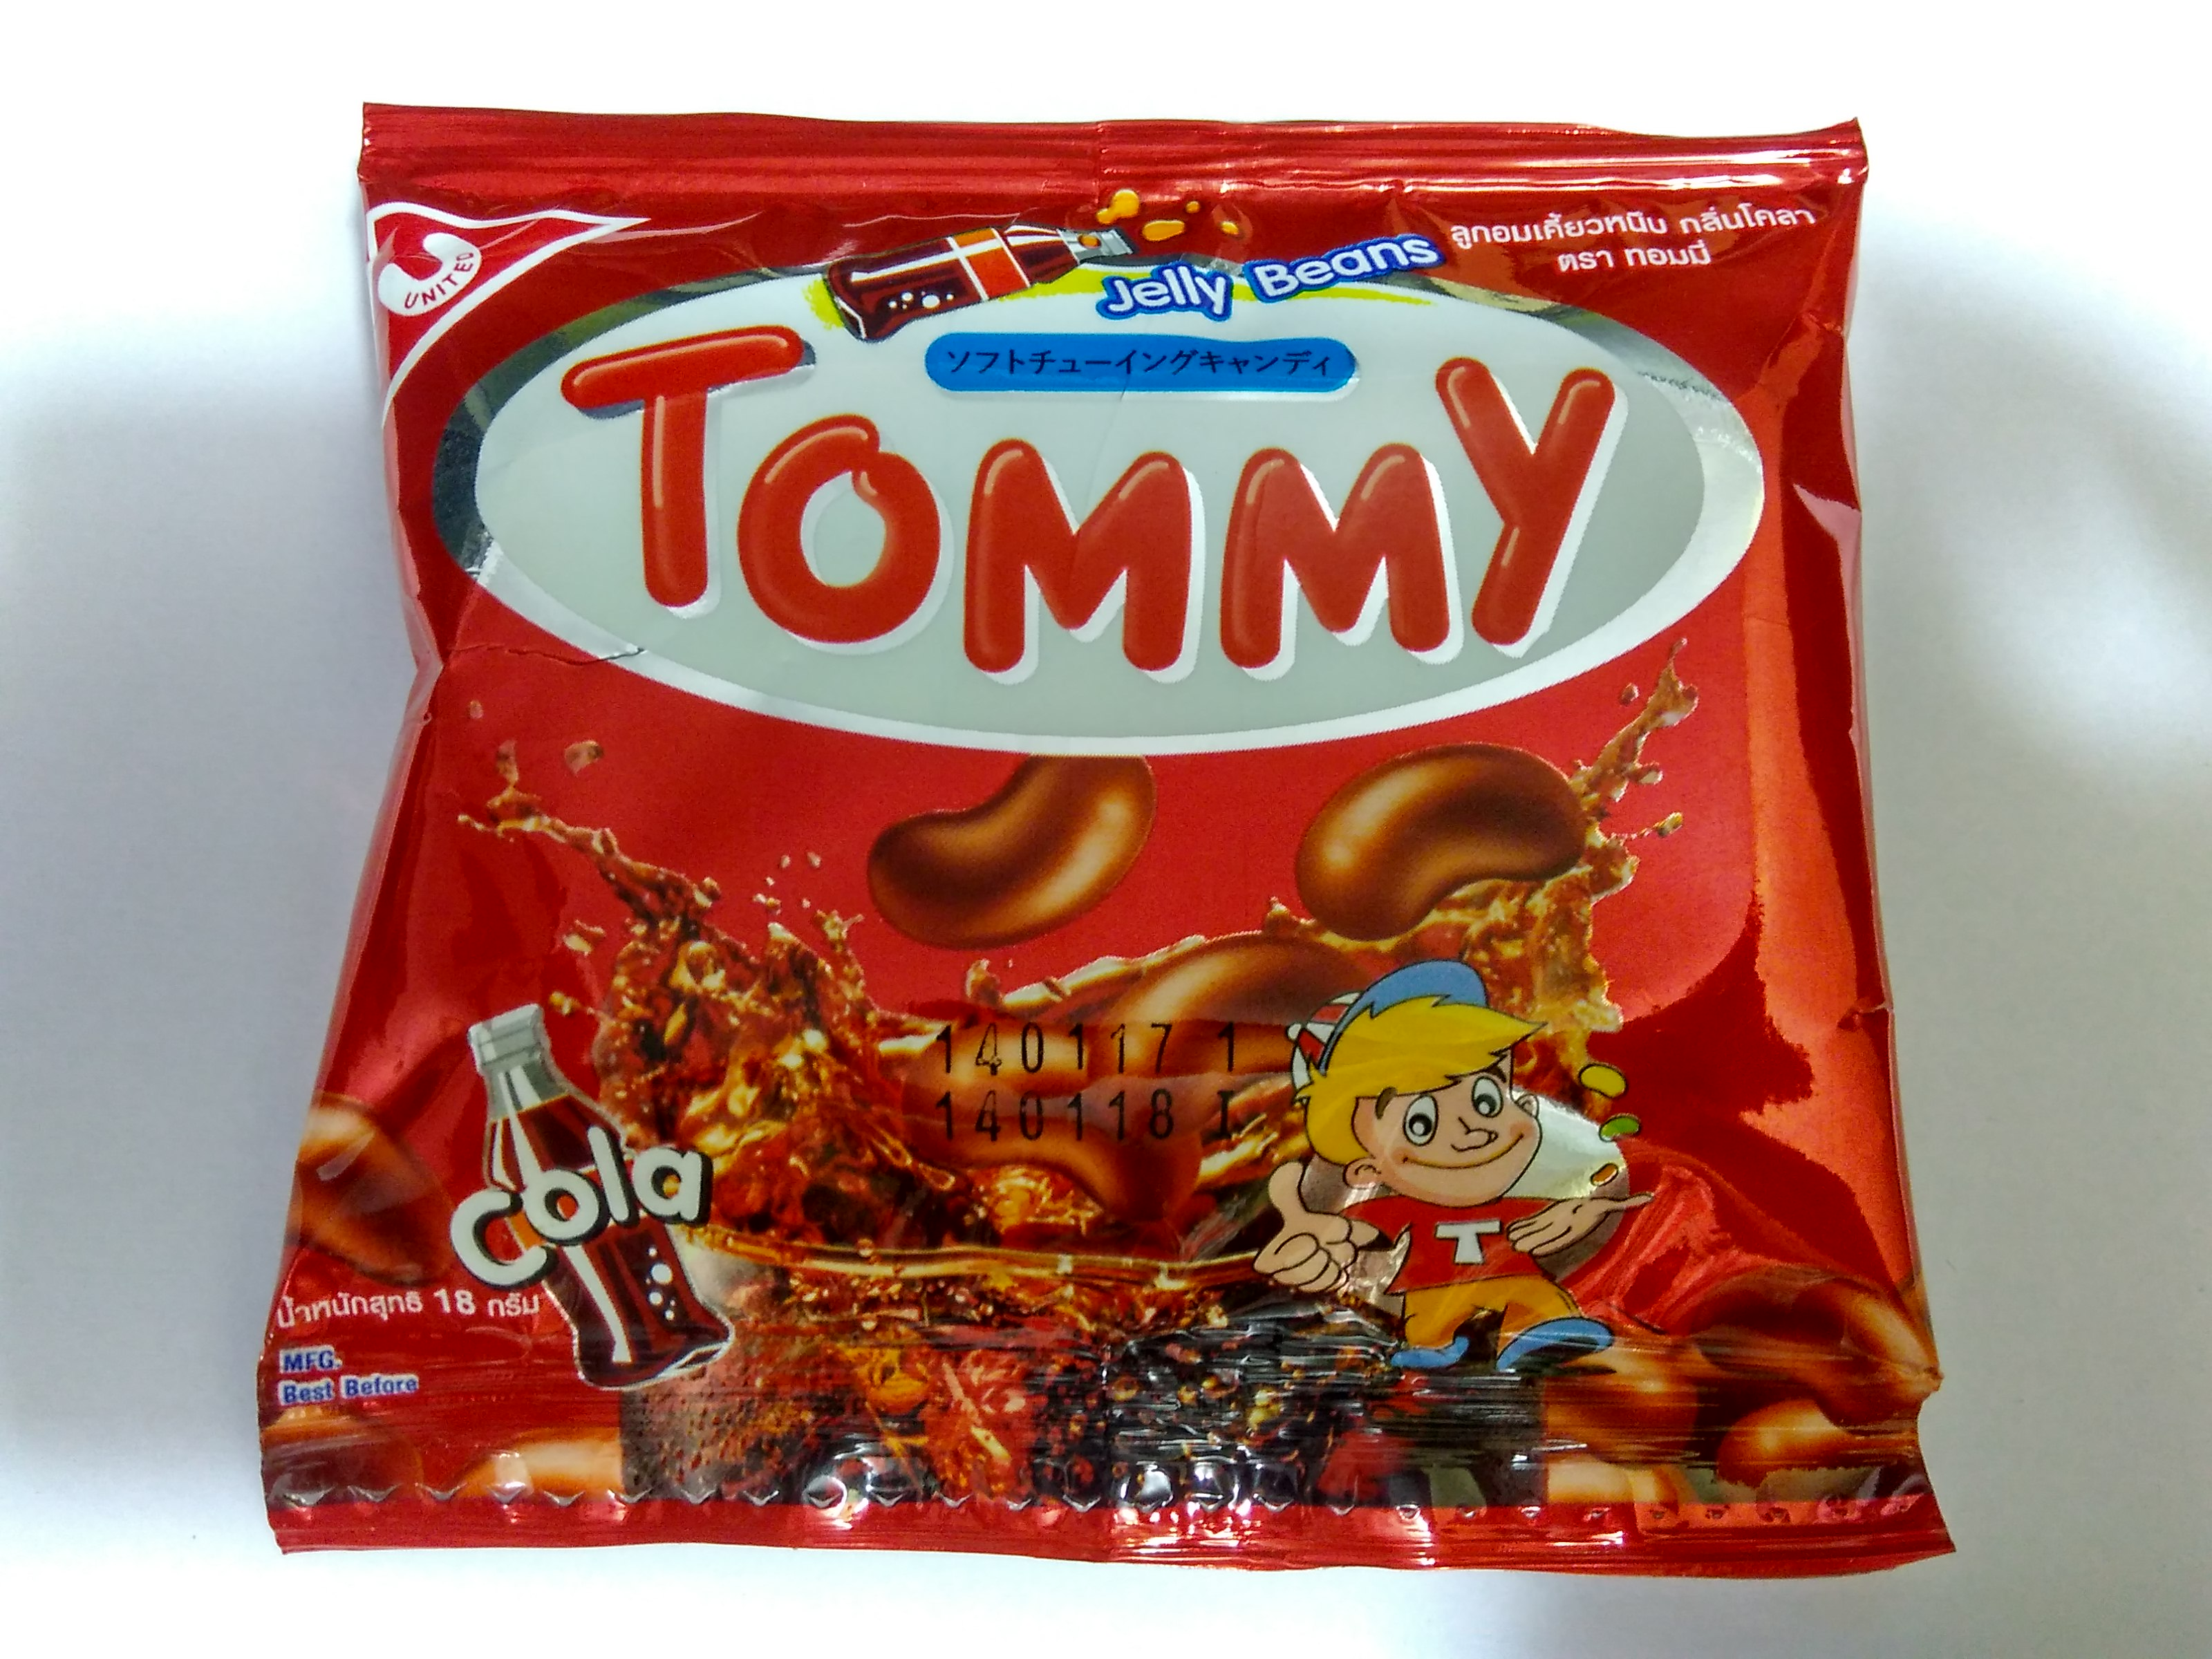 TOMMY JELLY BEANS - Dry Fruits